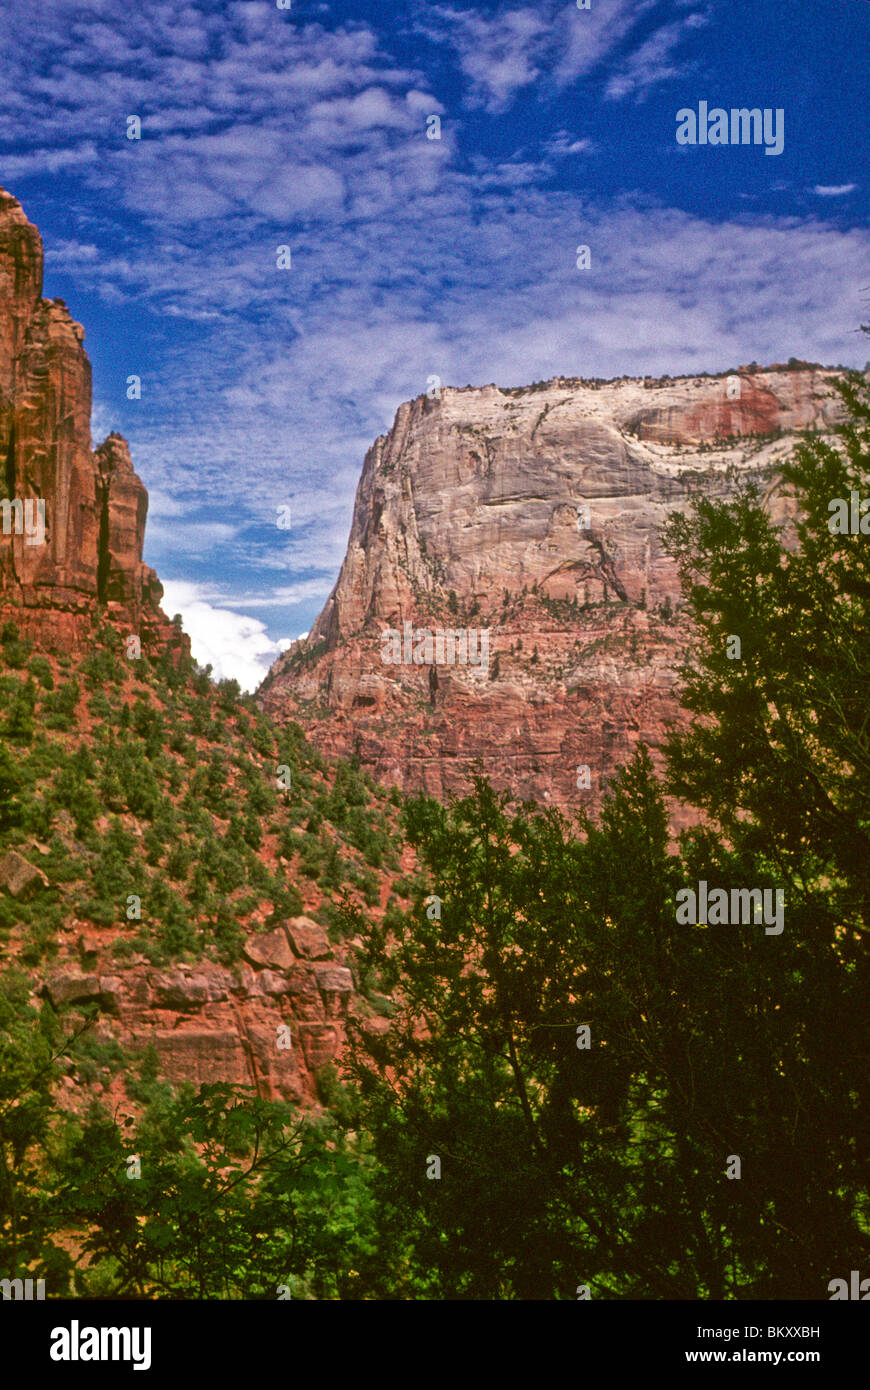 red sandstone cliffs rise against clear blue sky Zion National Park, Utah, USA - Stock Image